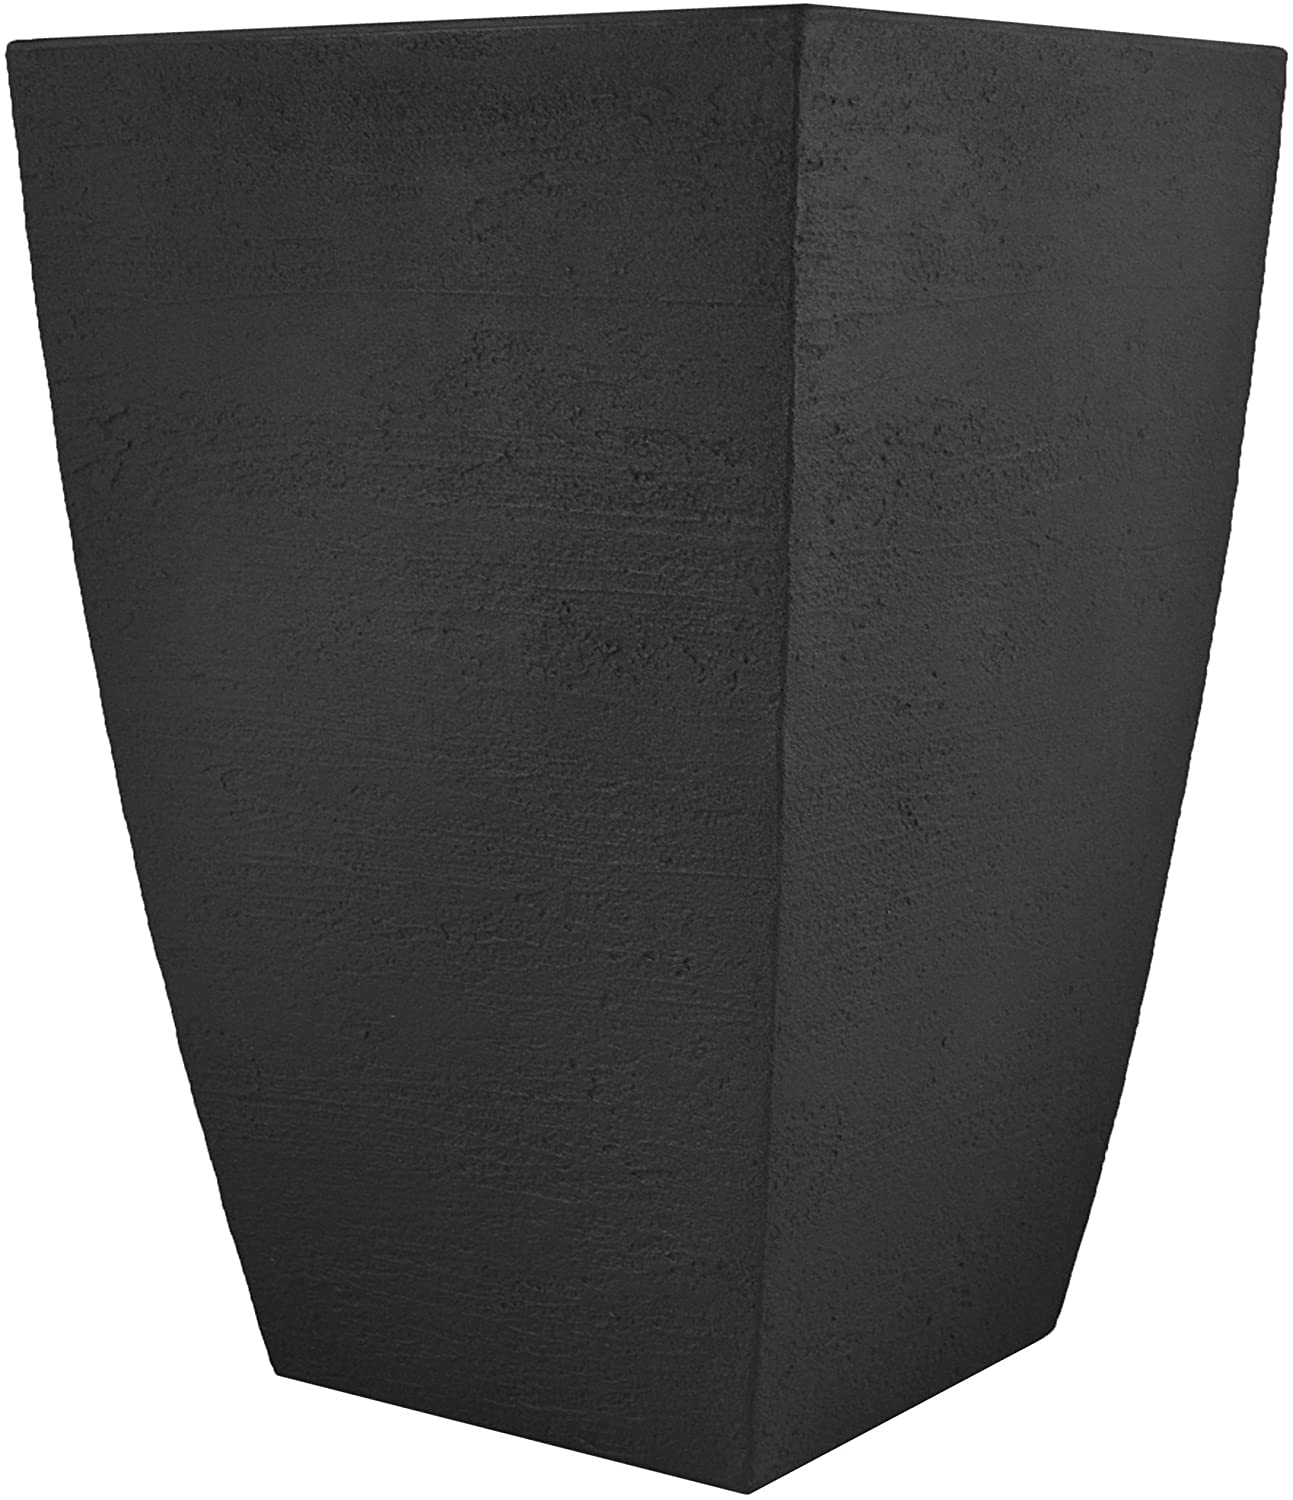 Tusco Products MSQT19BK Modern Square Garden Planter, 19-Inches Tall